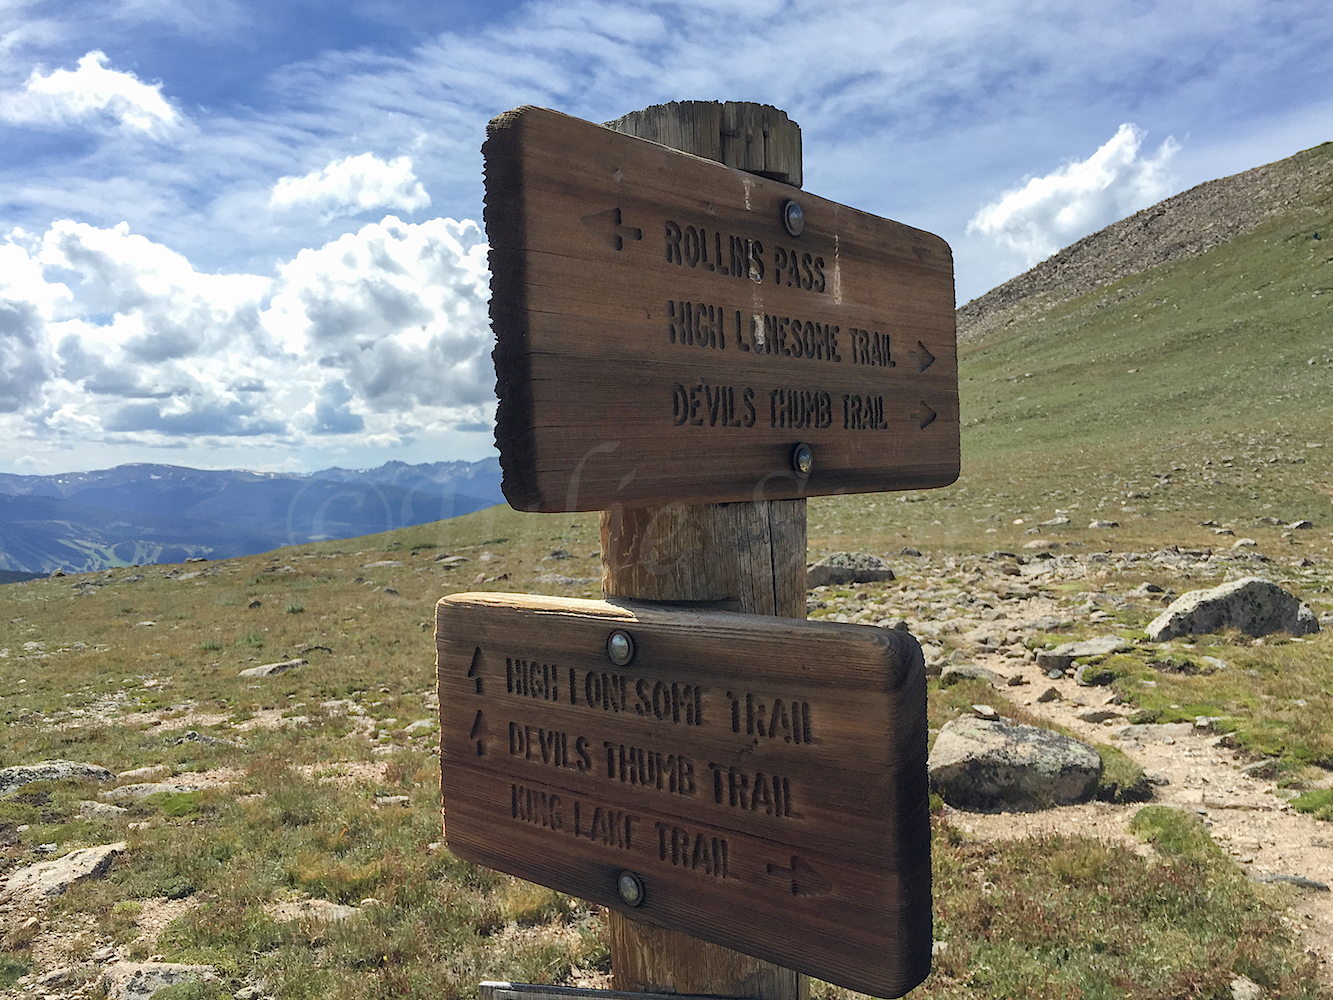 Trailhead sign on Rollins Pass, Image # 3441